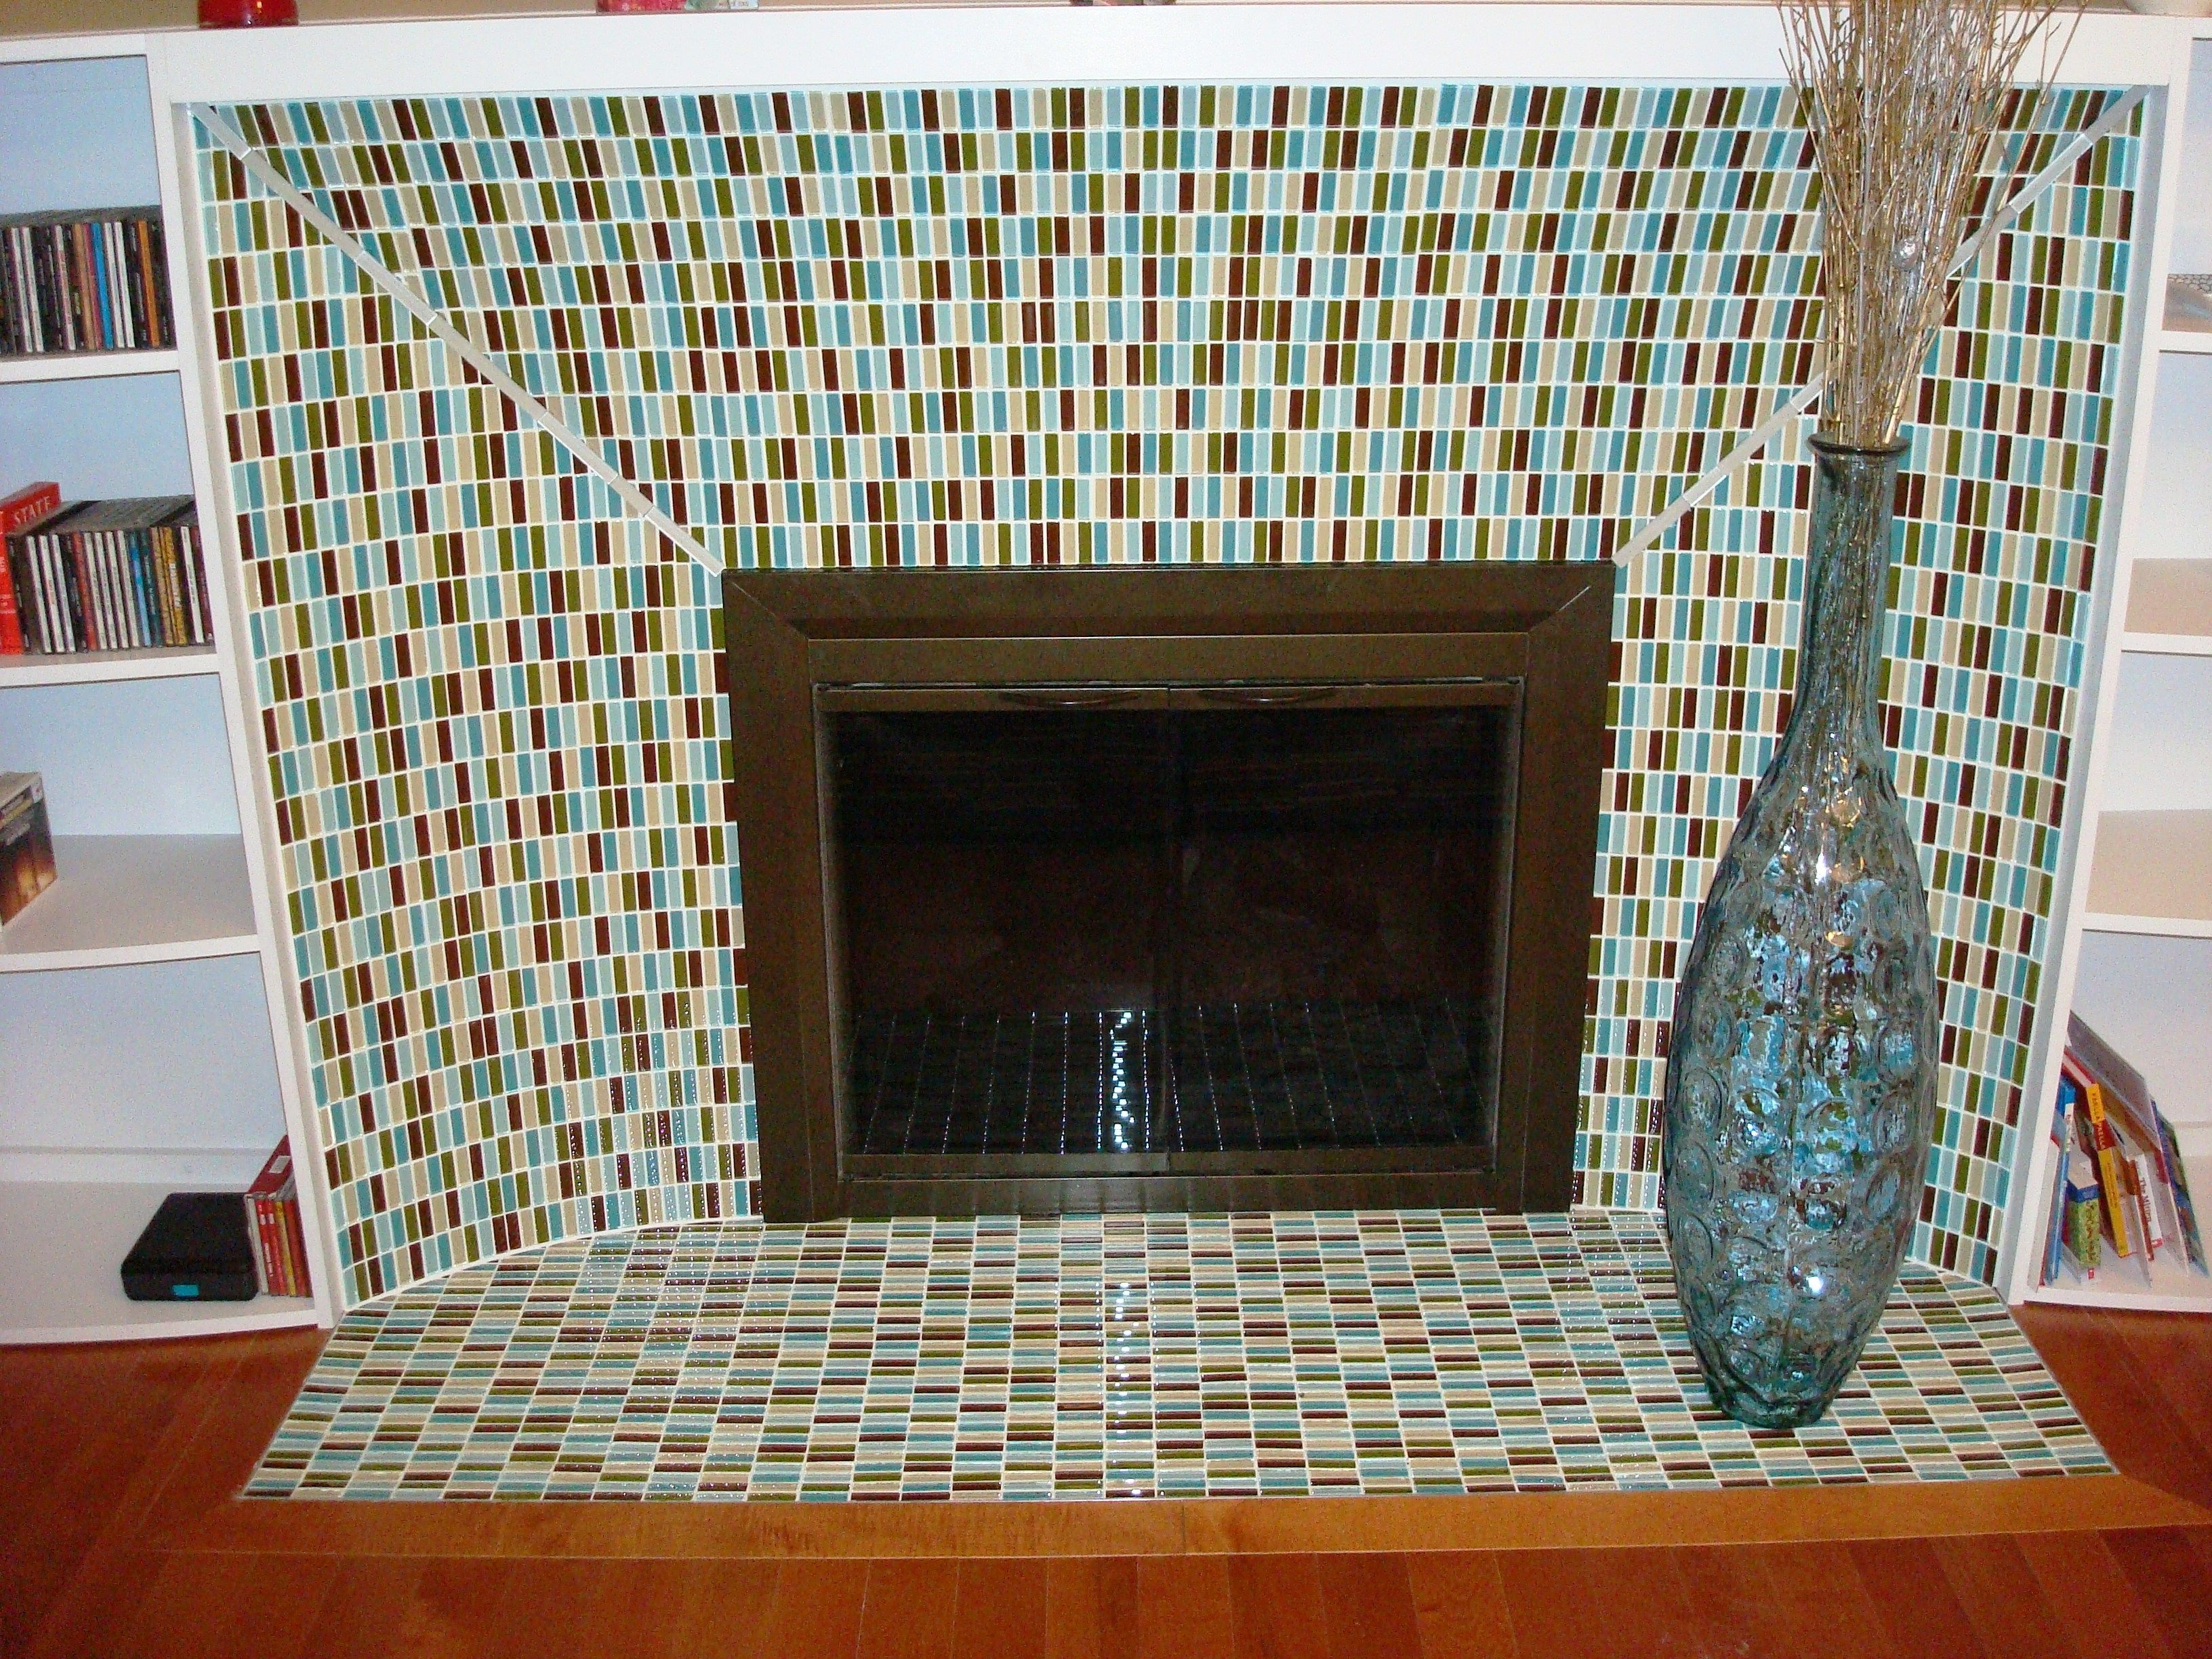 Mosaic Tile Fireplace I Can Do This Myself For The Home Pinterest Tiled Fireplace